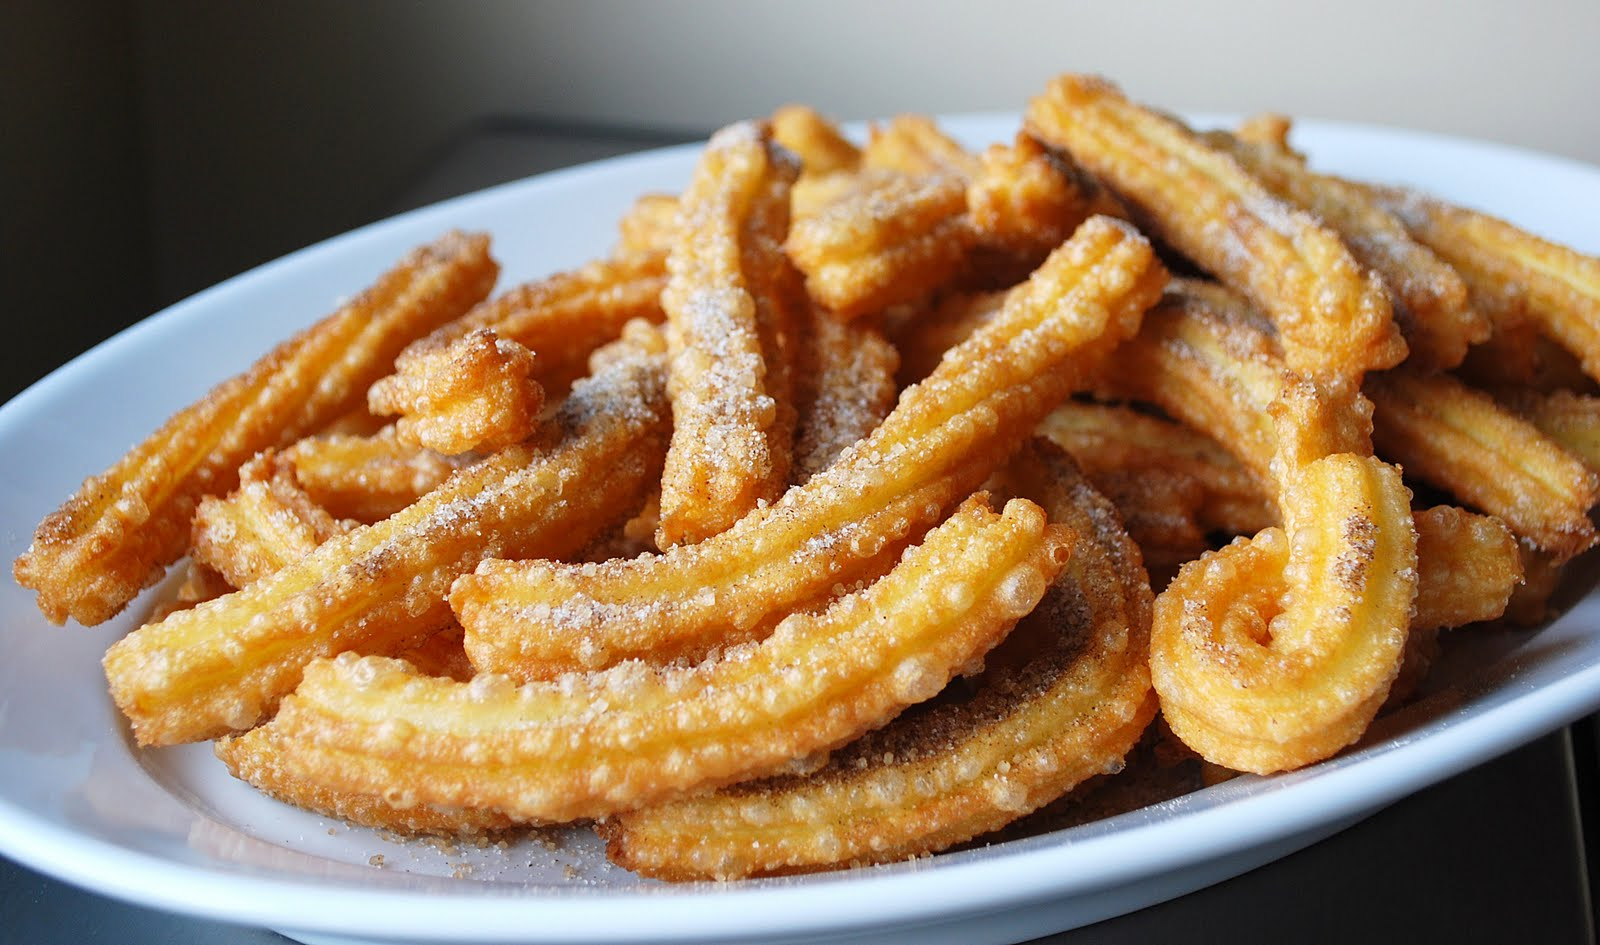 Churros prepared at home